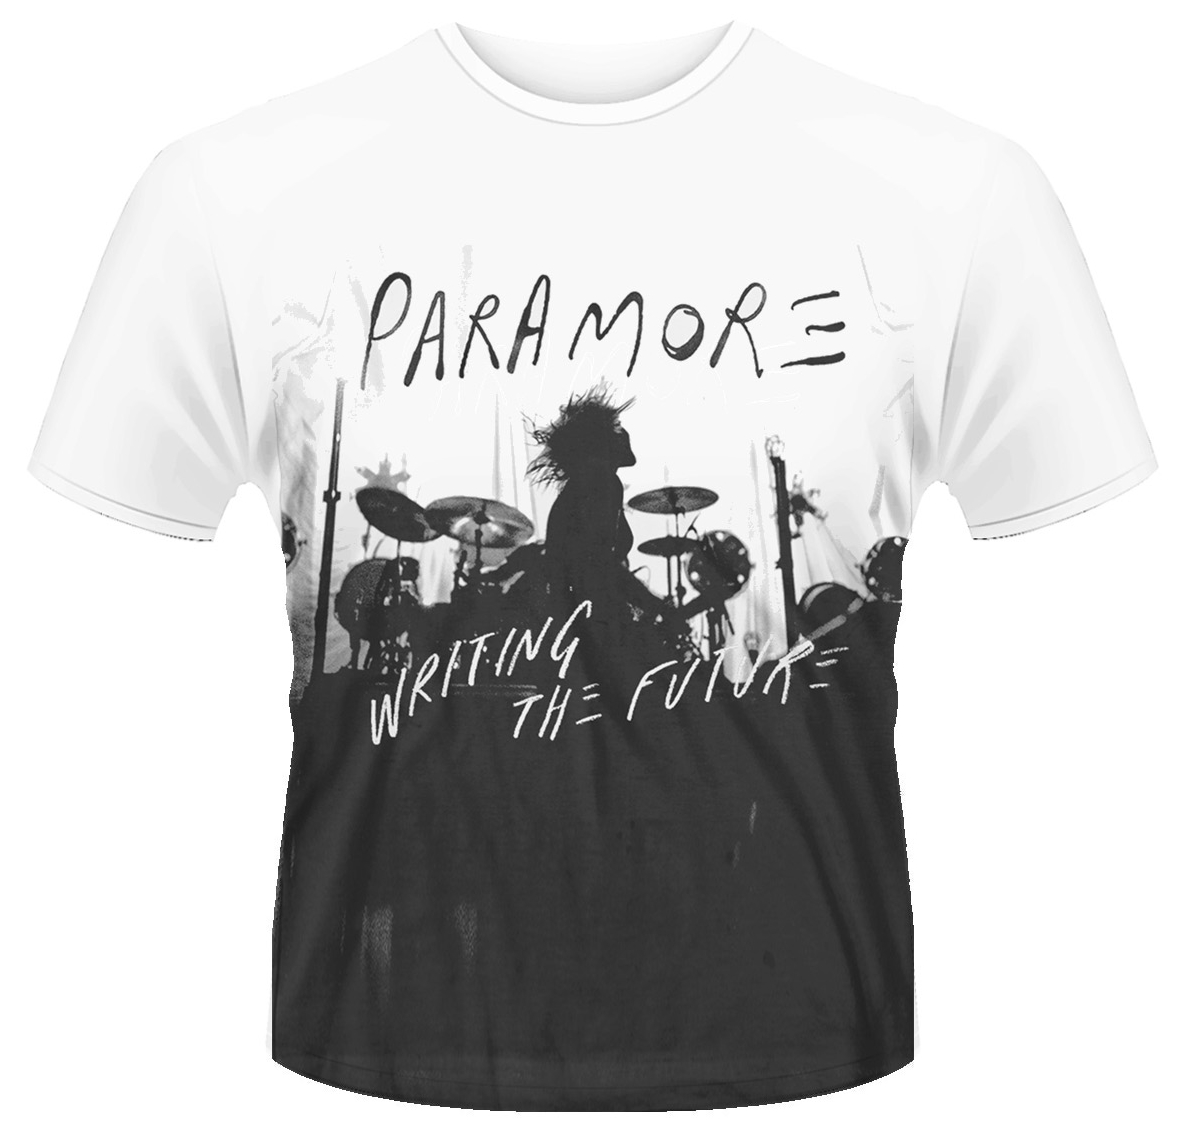 T Newamp; Silhouette' The 'writing Future Shirt Official Paramore ZiuOTkPX